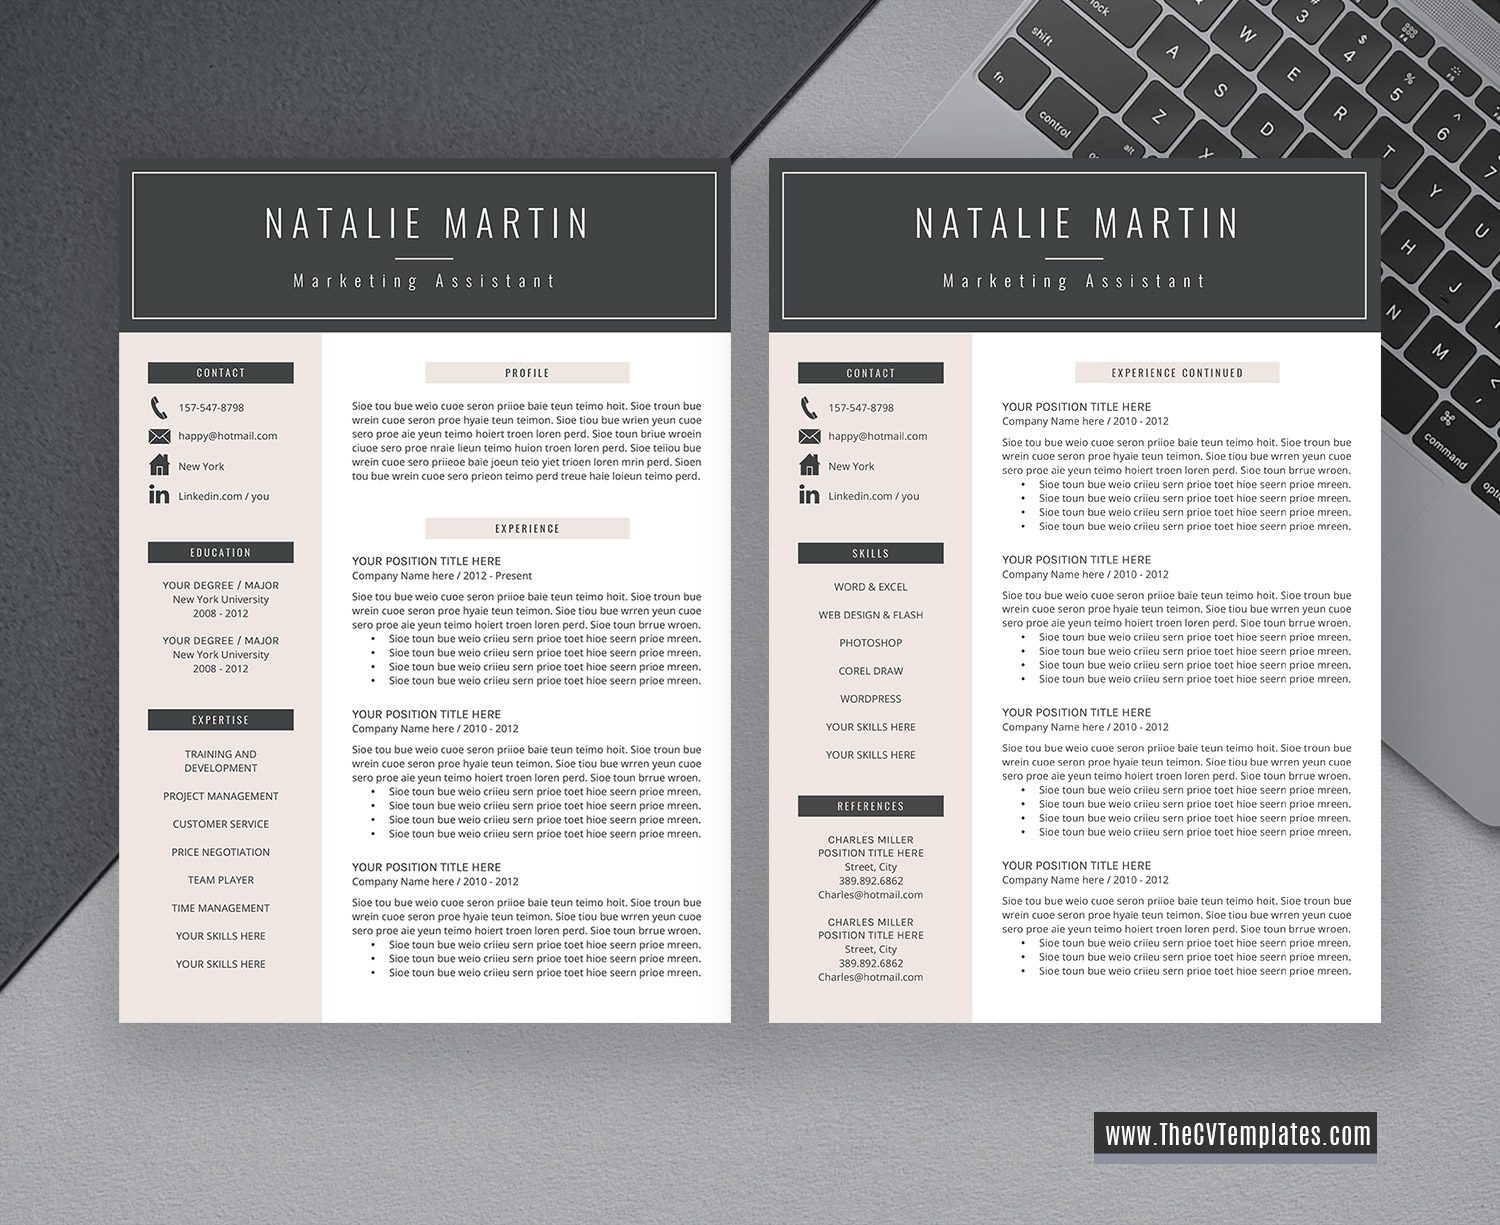 2020 CV Template for MS Word, Professional and Modern Resume Format, Cover  Letter, 1-3 Page, College Student Resume, Internship Resume, Printable ...